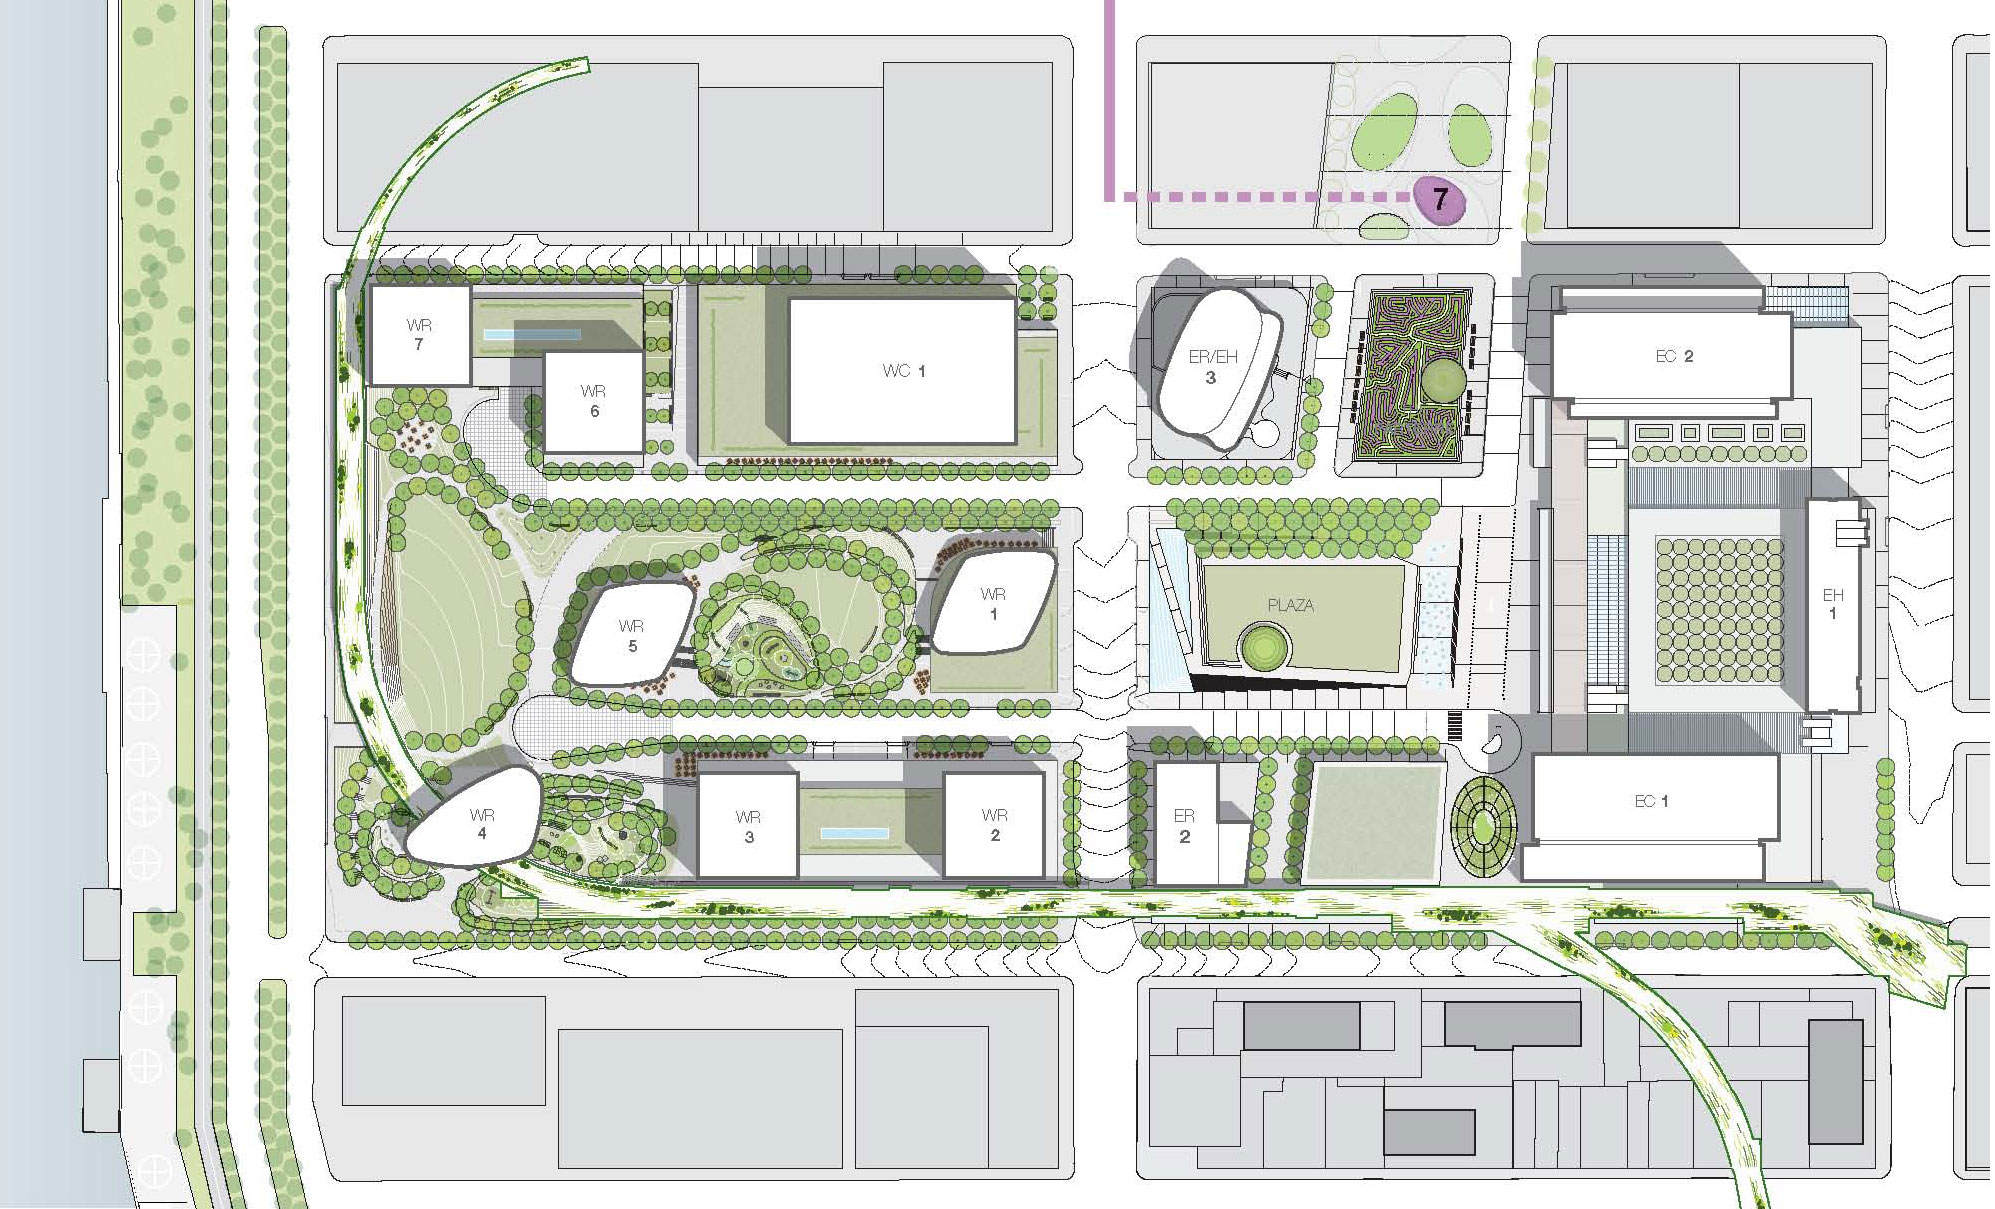 2009 Site Plan (click to enlarge)